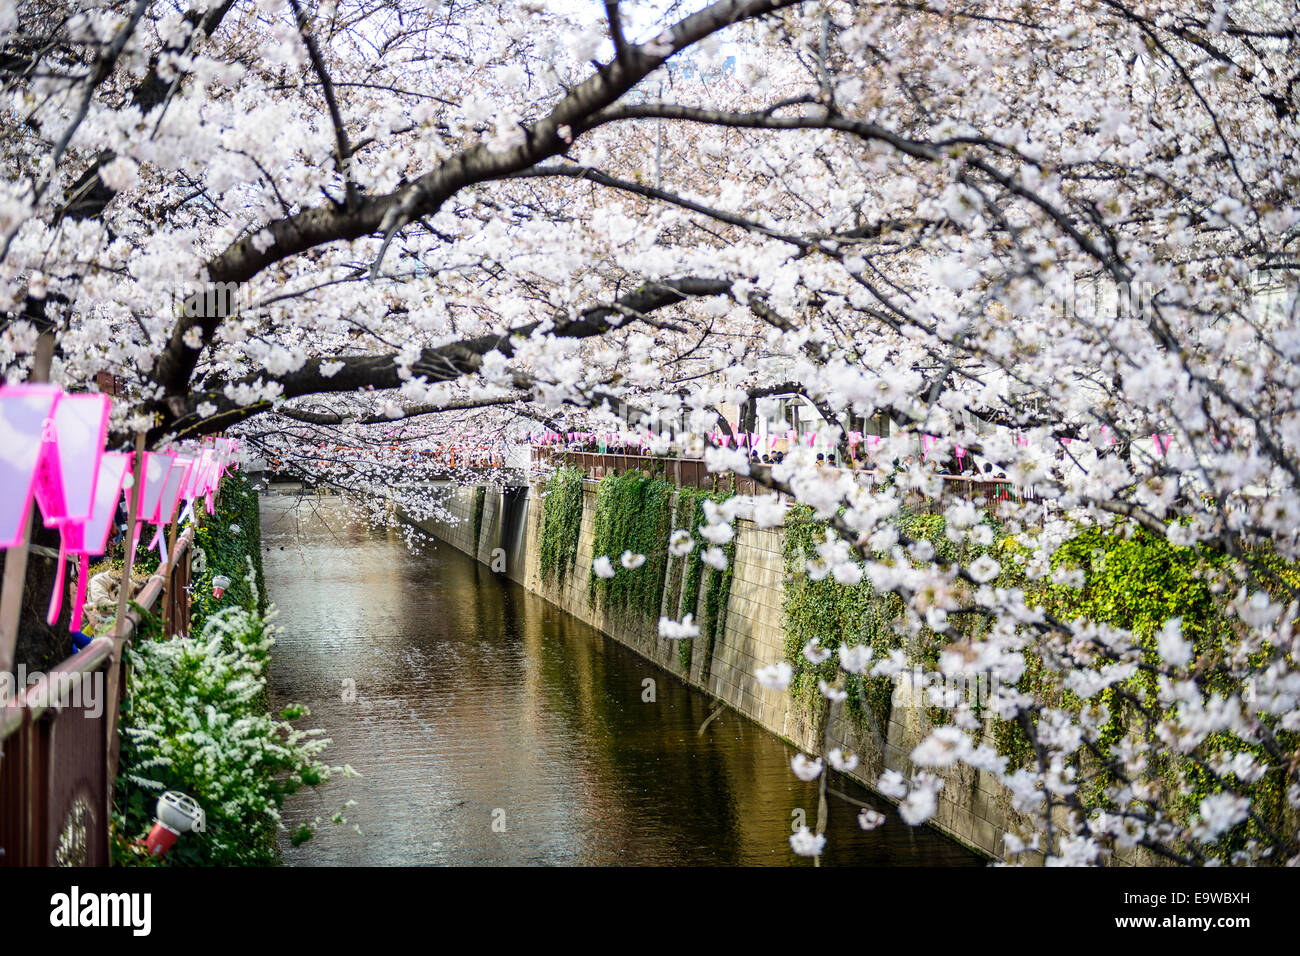 Tokyo, Japan at the Meguro Canal during the spring cherry blossom festival. - Stock Image